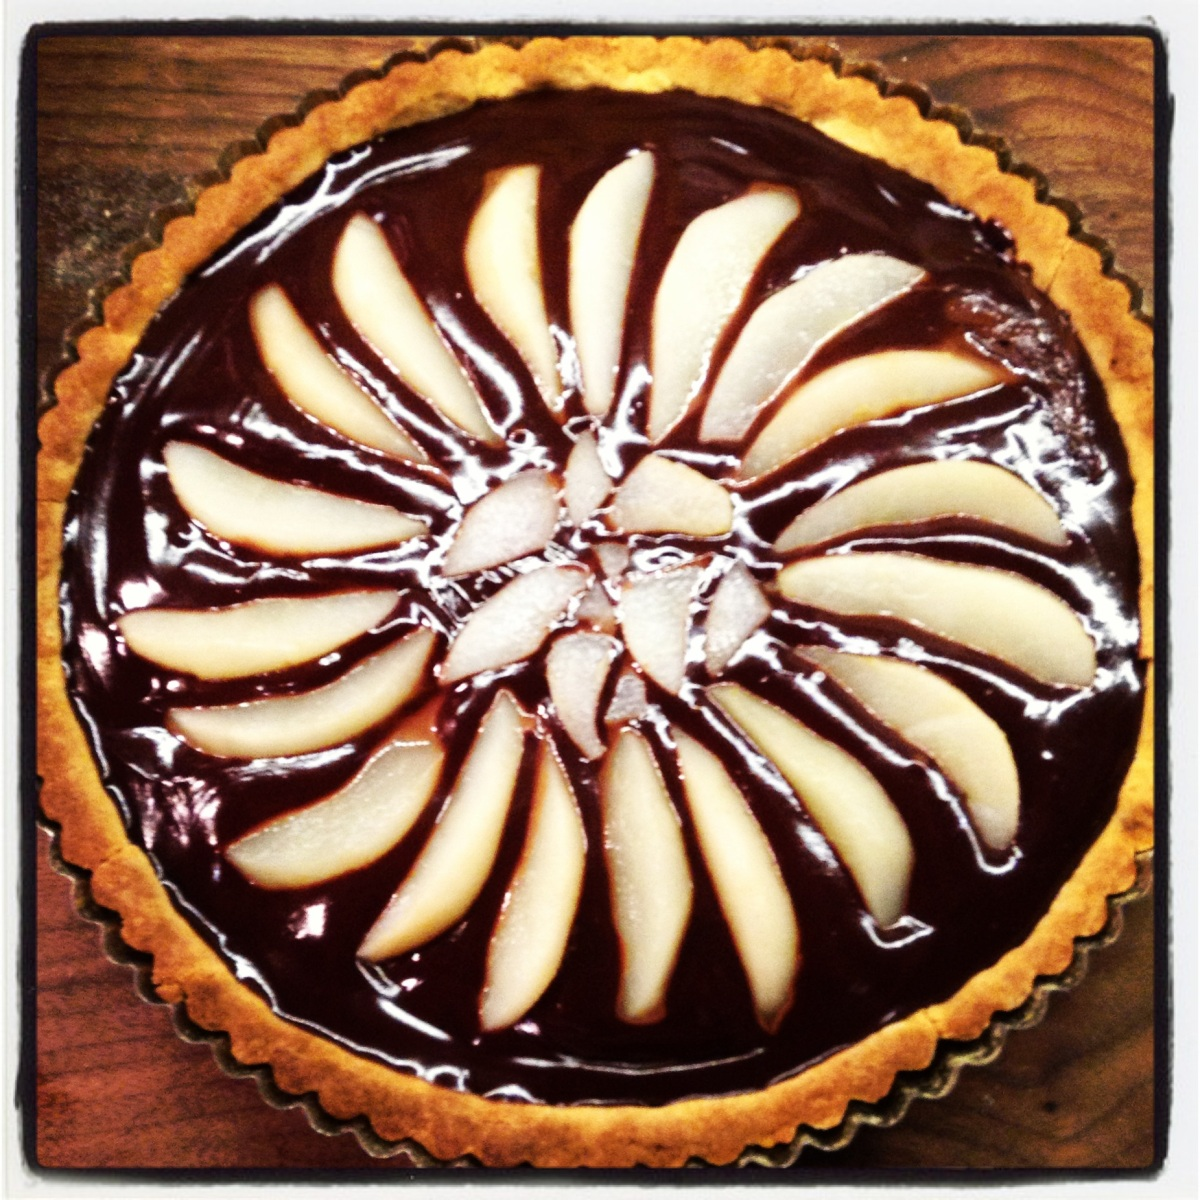 Chocolate and Pears Tart